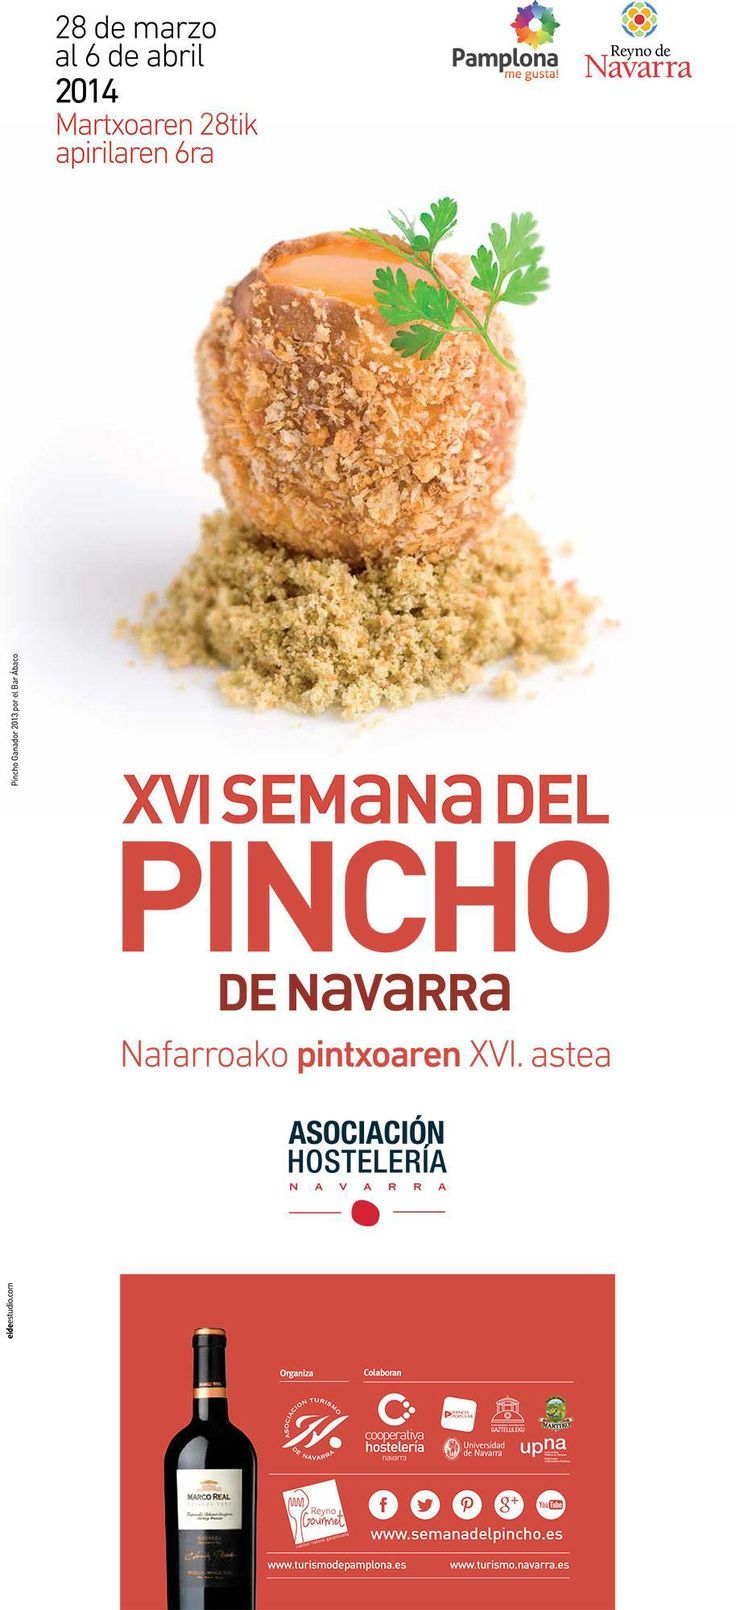 ¡Una semana irresistible! No te pierdas la semana del pincho que comienza este viernes  Ez galdu Pintxoaren Astea, ostiral honetatik aurrera. Ezingo diozu eutsi!  Une semaine délicieux! Ne ratez surtout pas la Semaine du Pincho de Navarre. Du 28 Mars au 6 Avril  A delicious week! Don't miss the Navarra Pinchos Week. March 28th to April 6th #pamplona #turismo #gastronomía #food #foodie #travel #traveling #gastronomytravel #gastronomie